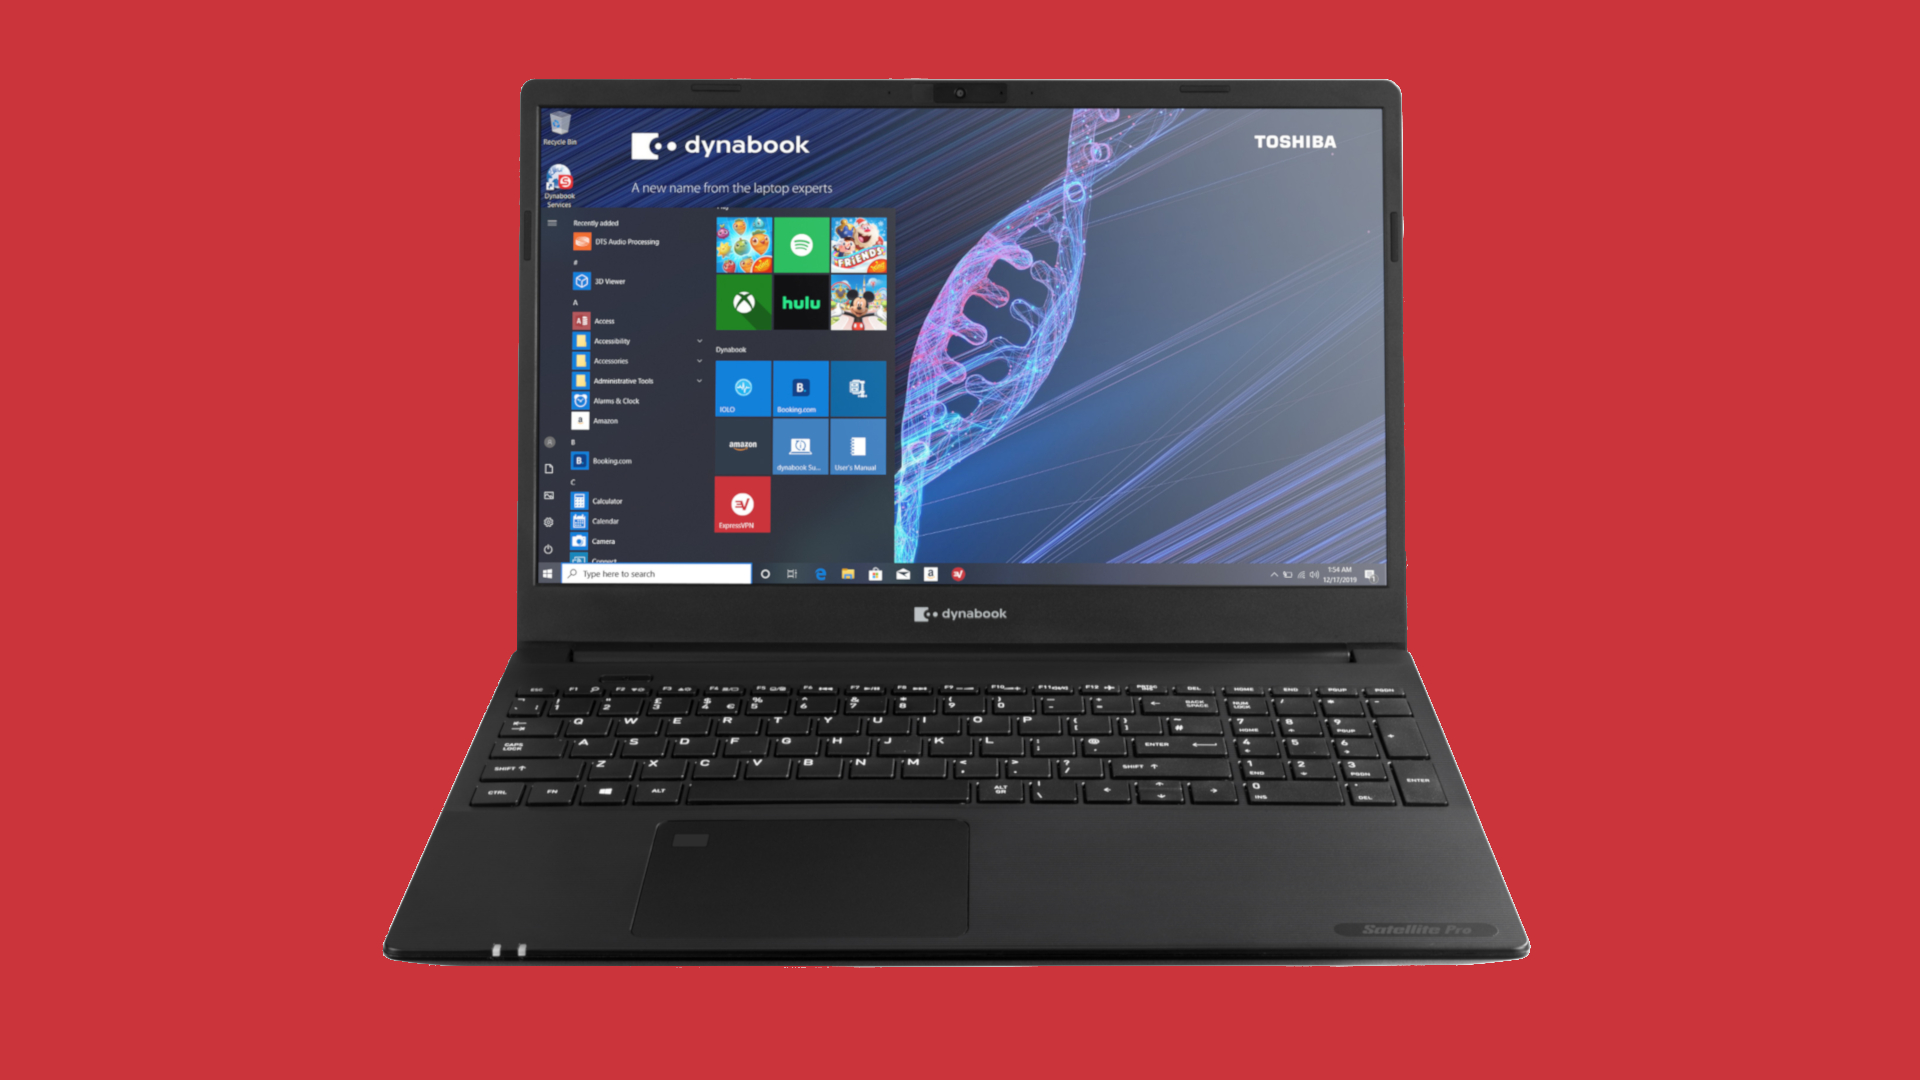 ExpressVPN will now come pre-installed on all Dynabook laptops